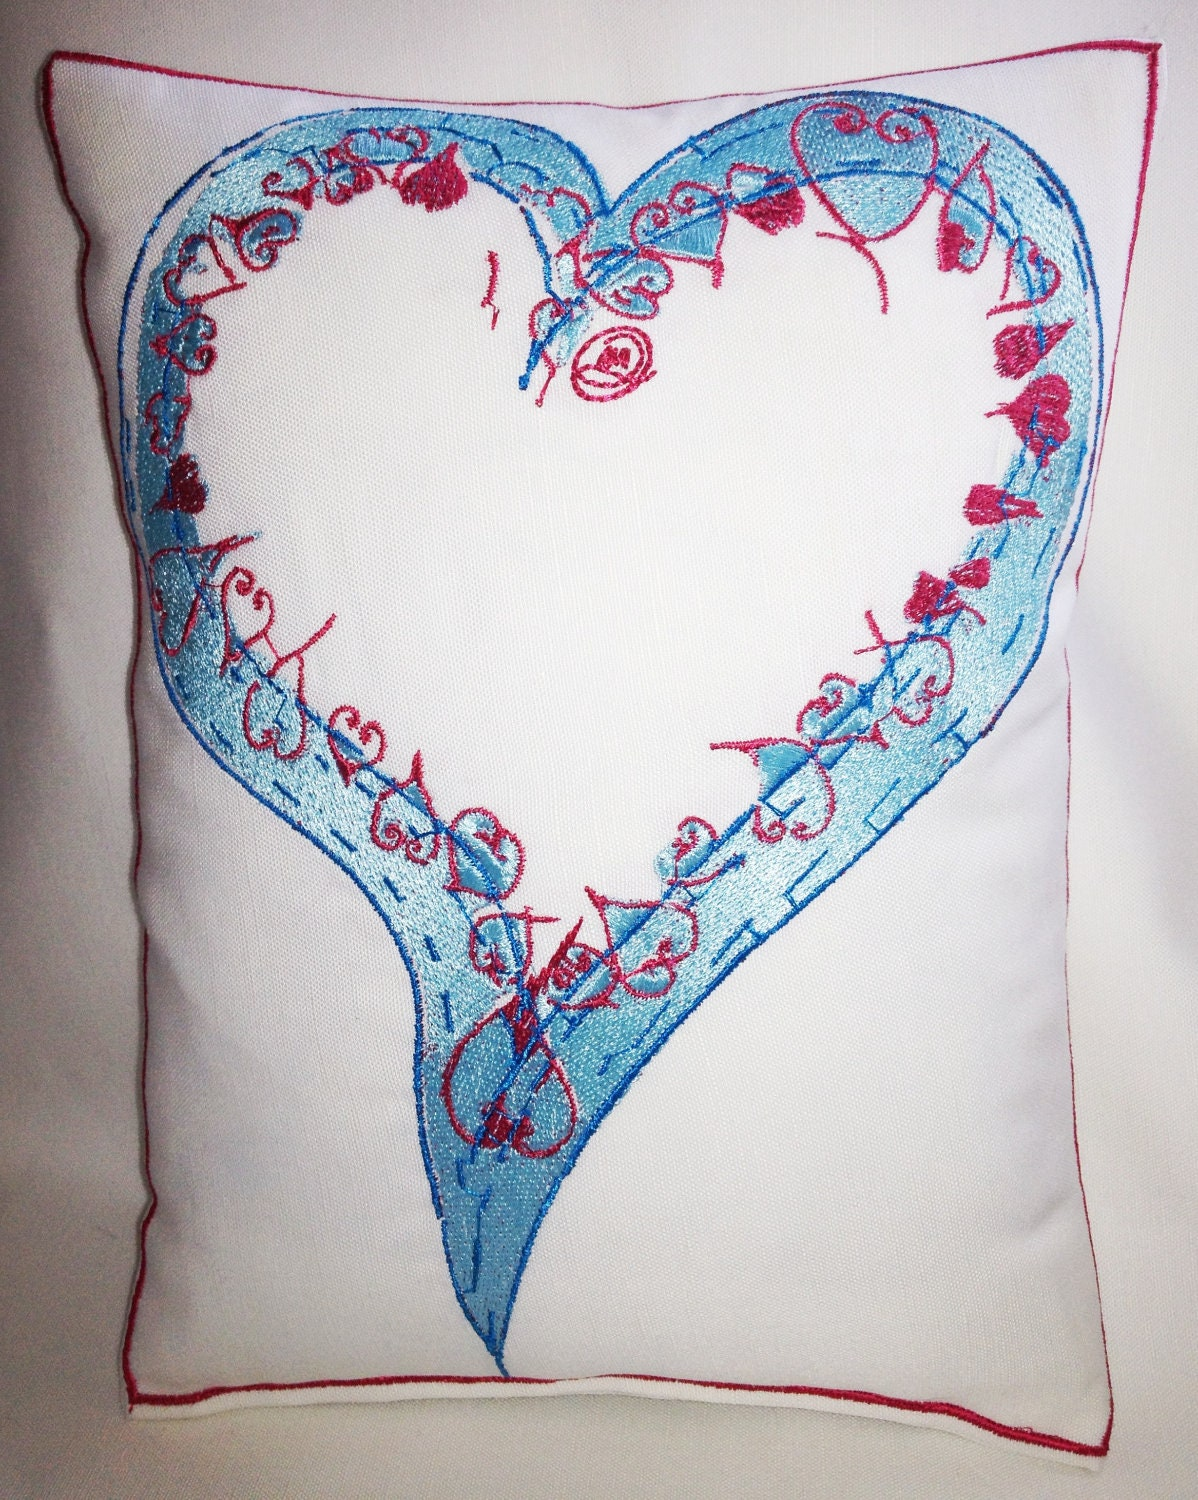 Love Heart, Artistic Embroidery - Throw Cushion